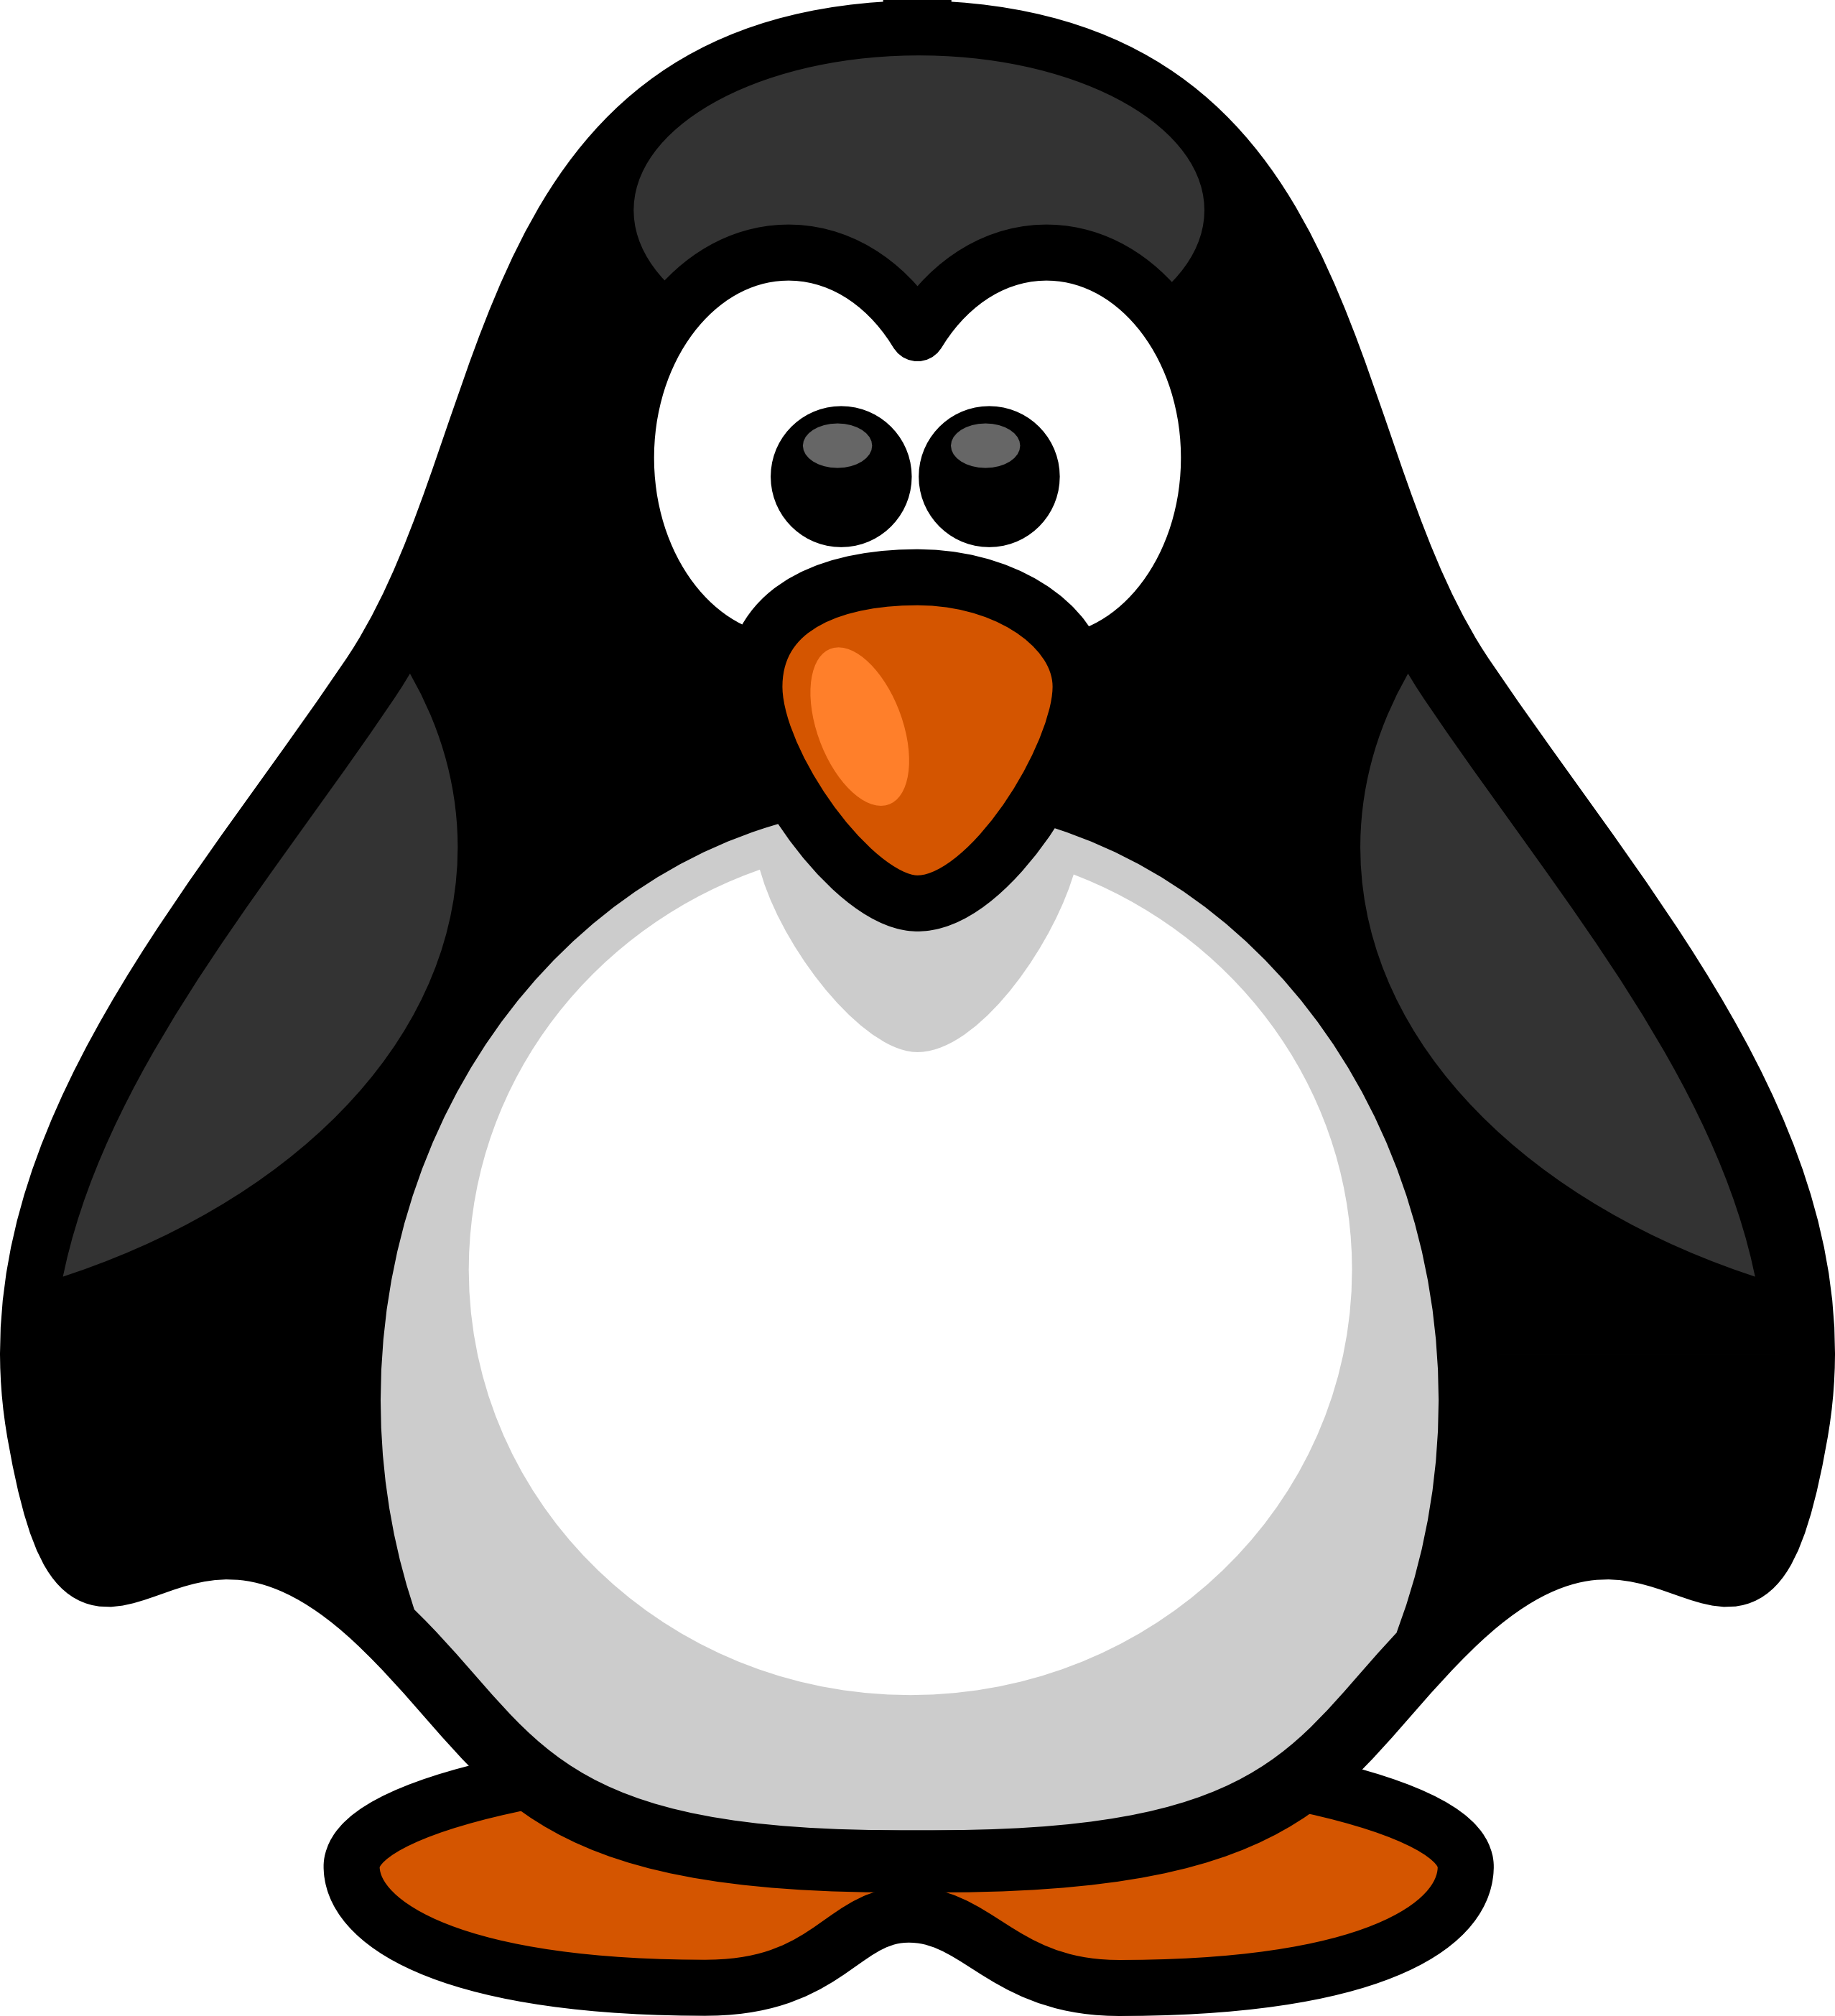 Animal clipart black and white free clipart image